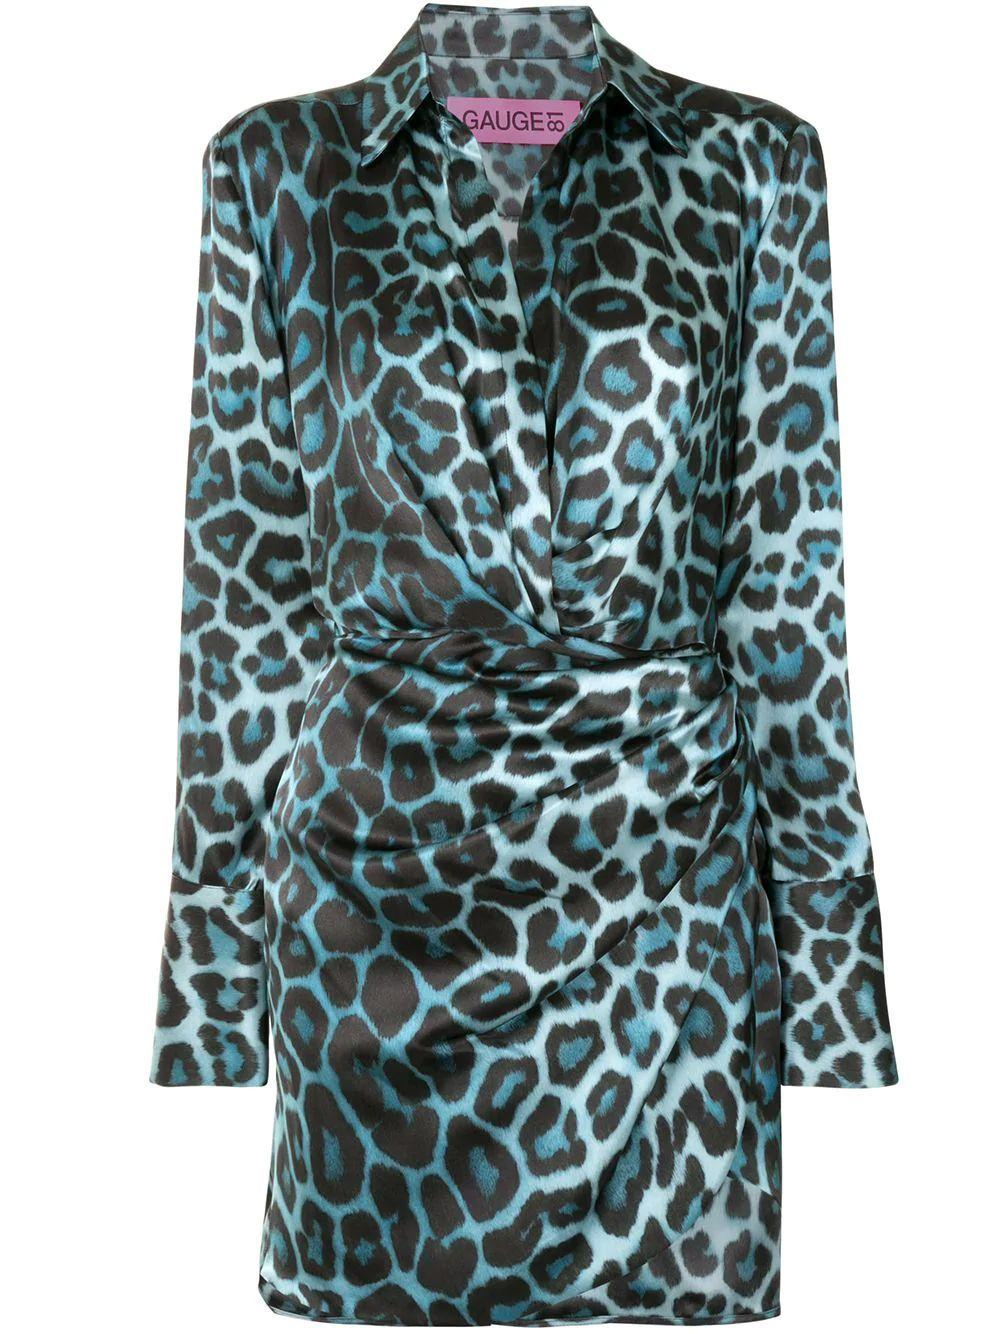 Naha Leopard Print Mini Dress